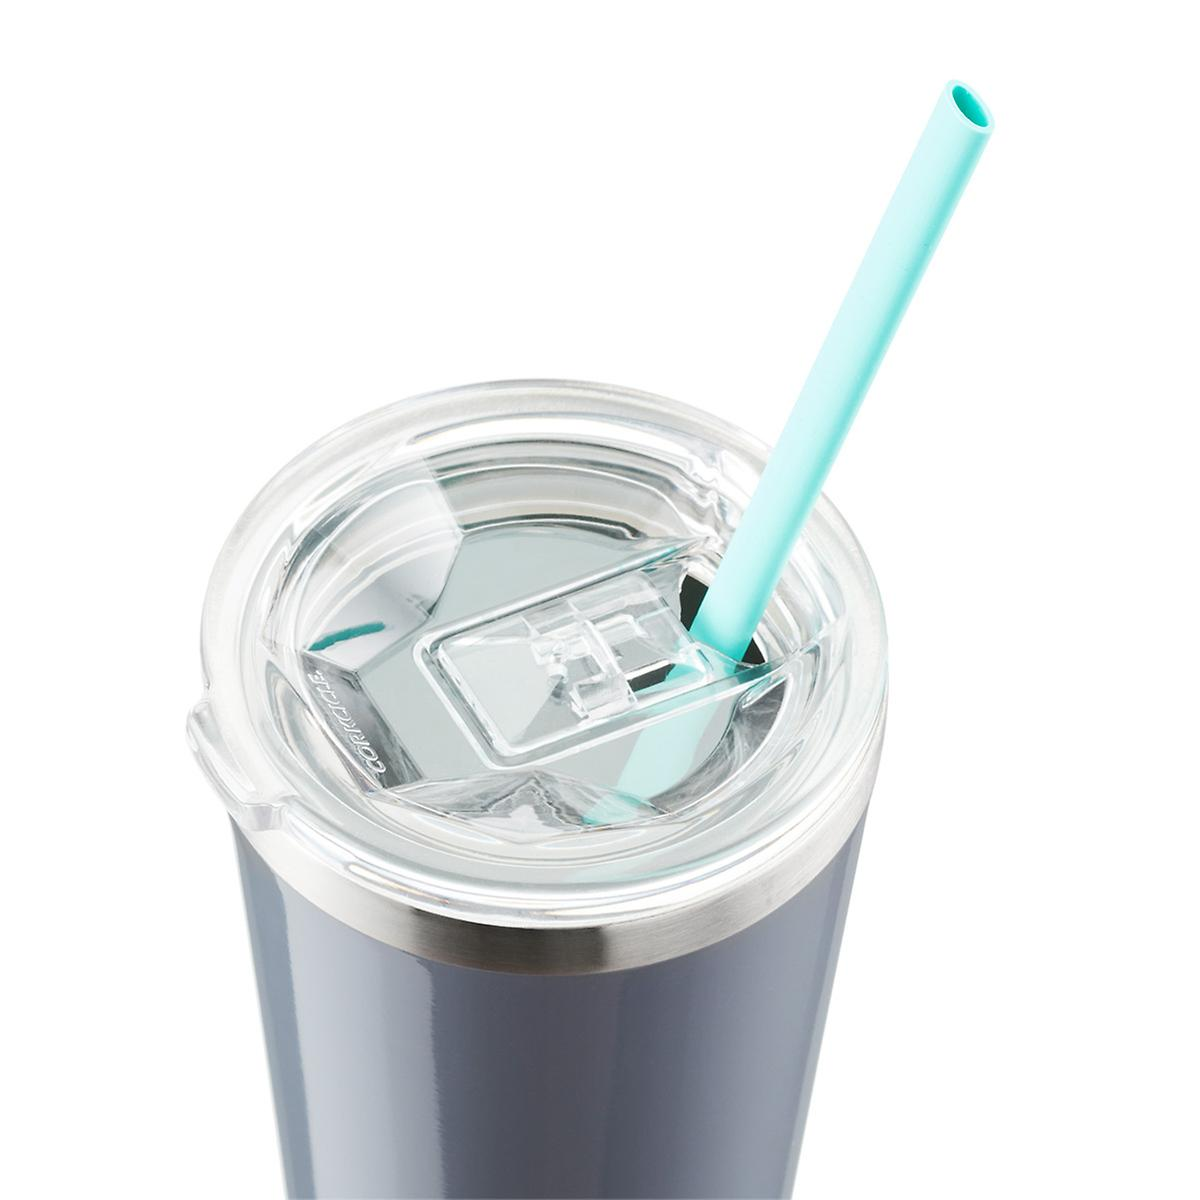 HotSips Reusable Straws